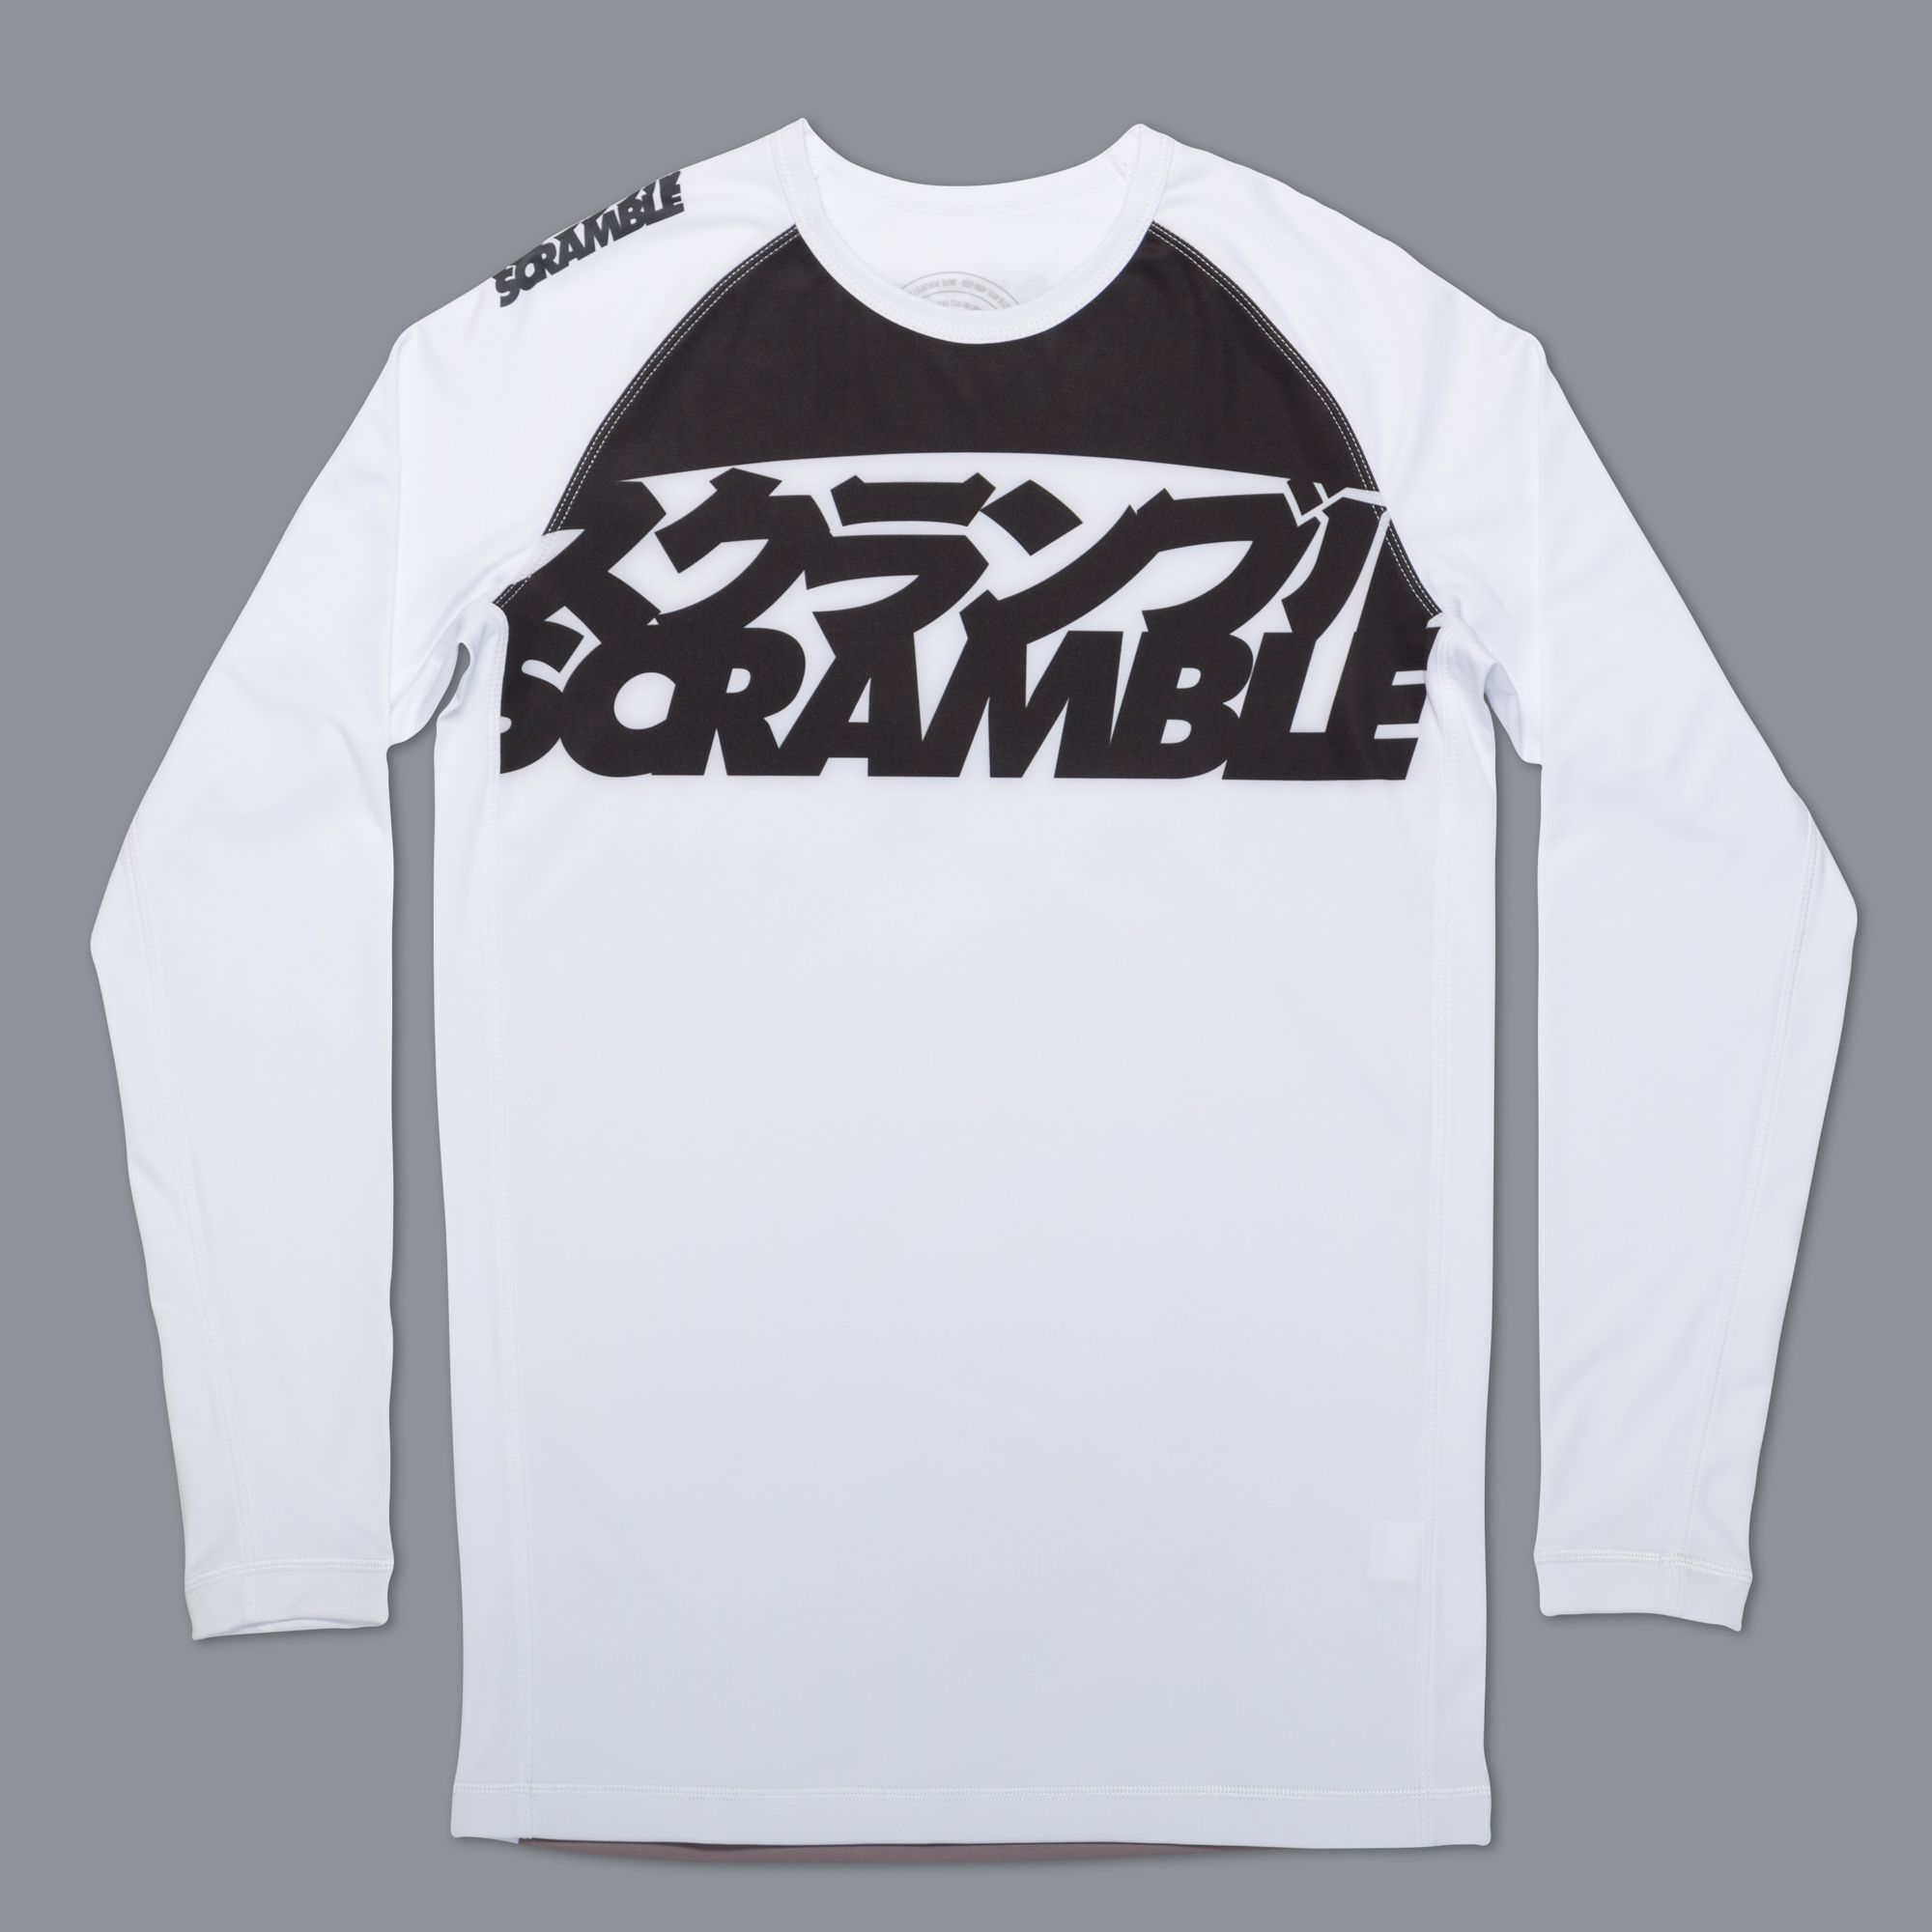 SCRAMBLE RANKED RASHGUARD V3 –ホワイト